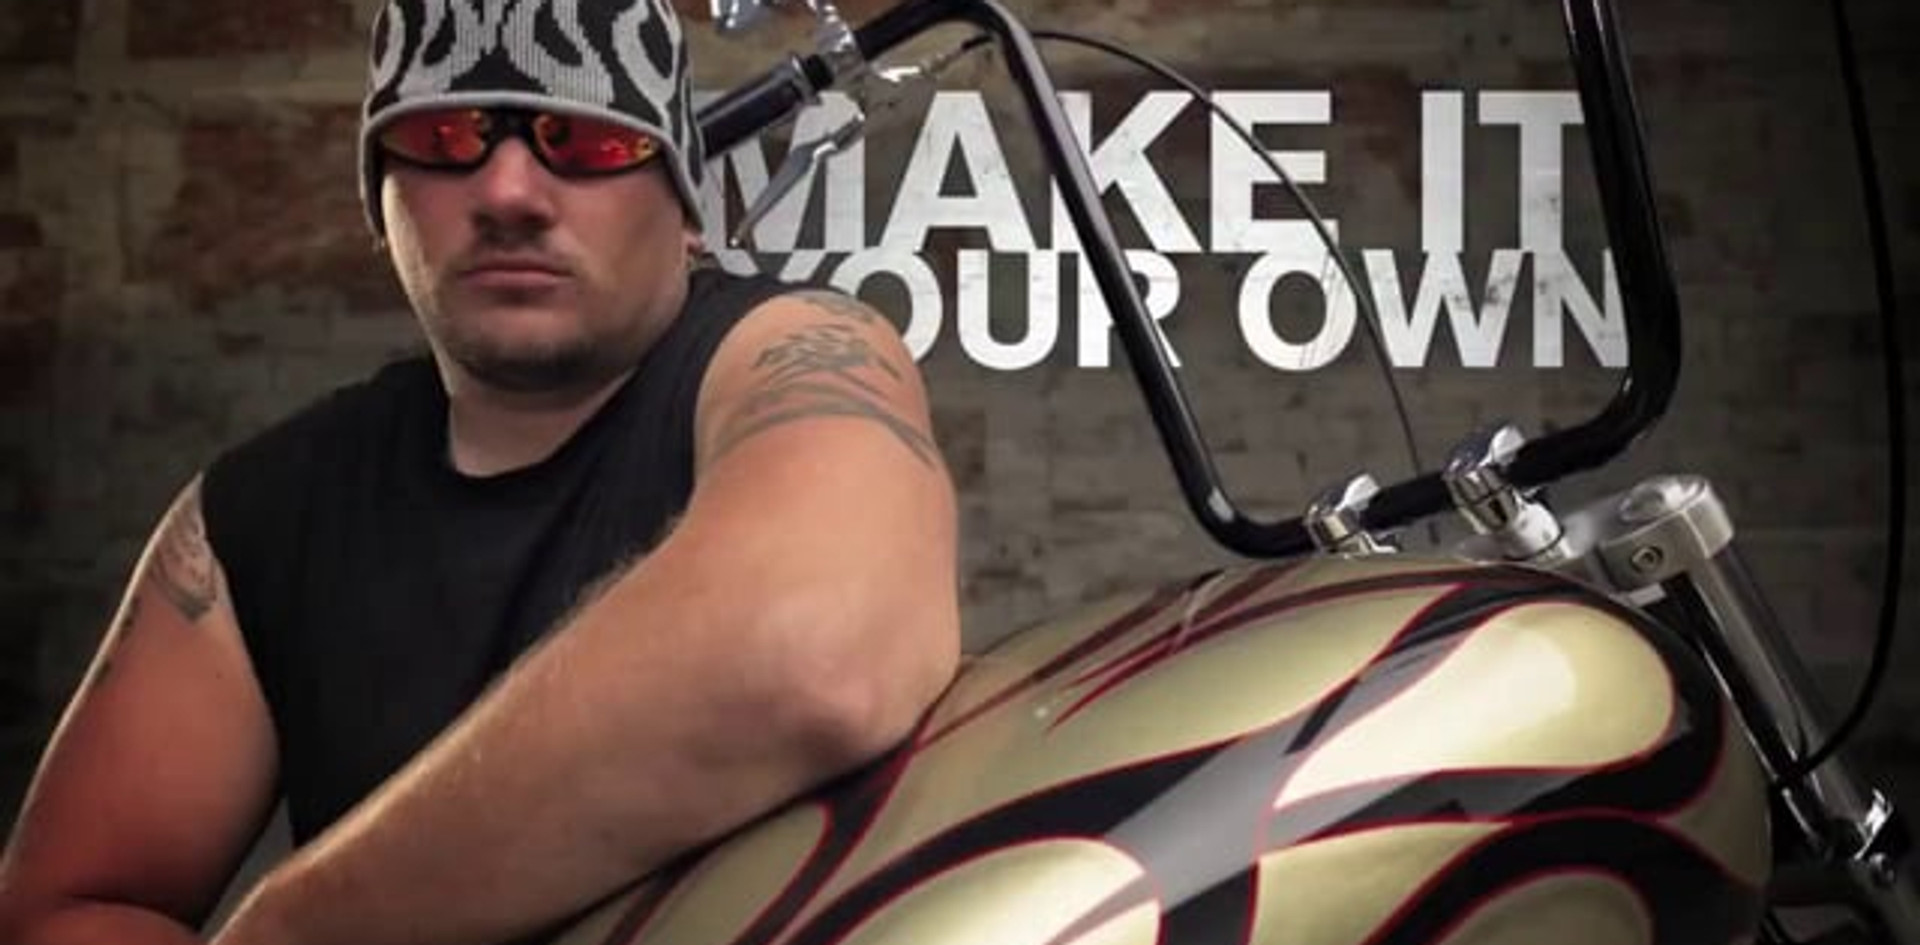 Star Motorcycles: Make it Your Own